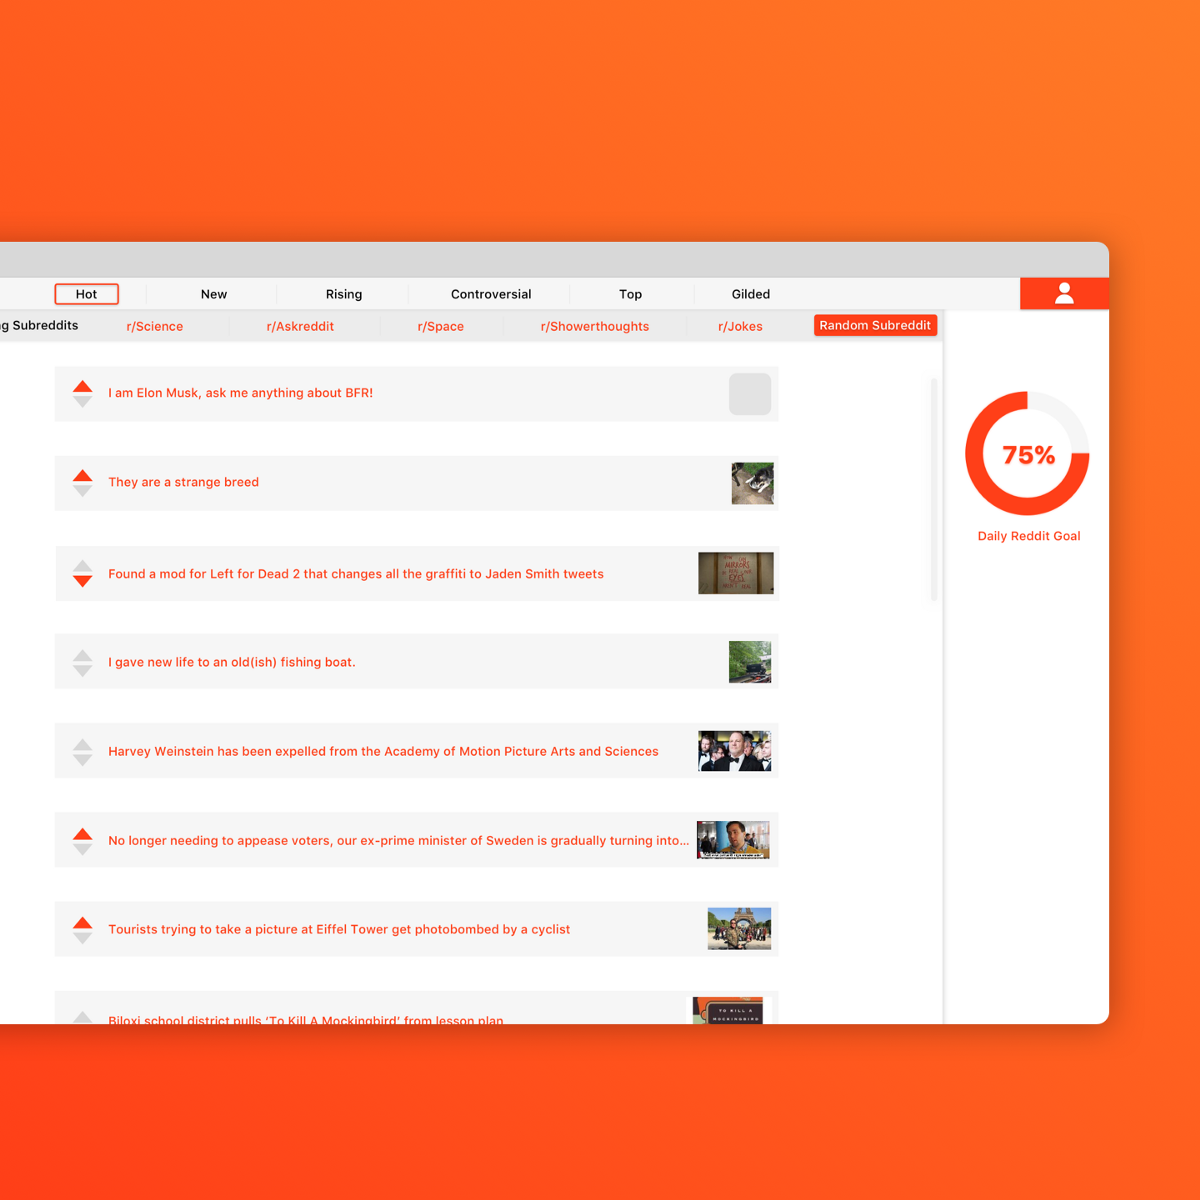 Redesigning the Onboarding Process for Reddit